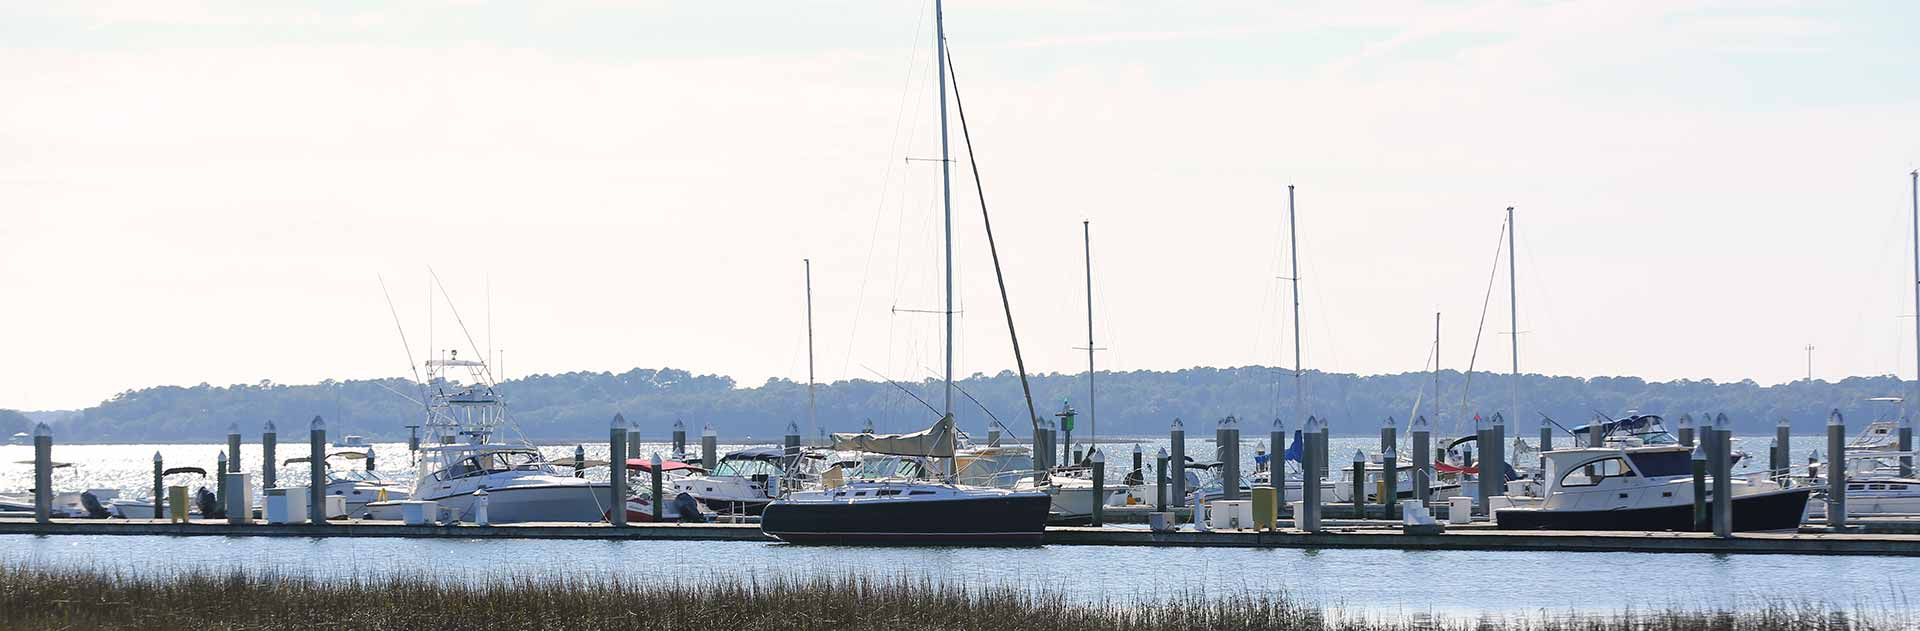 Hilton Head Plantation Marina